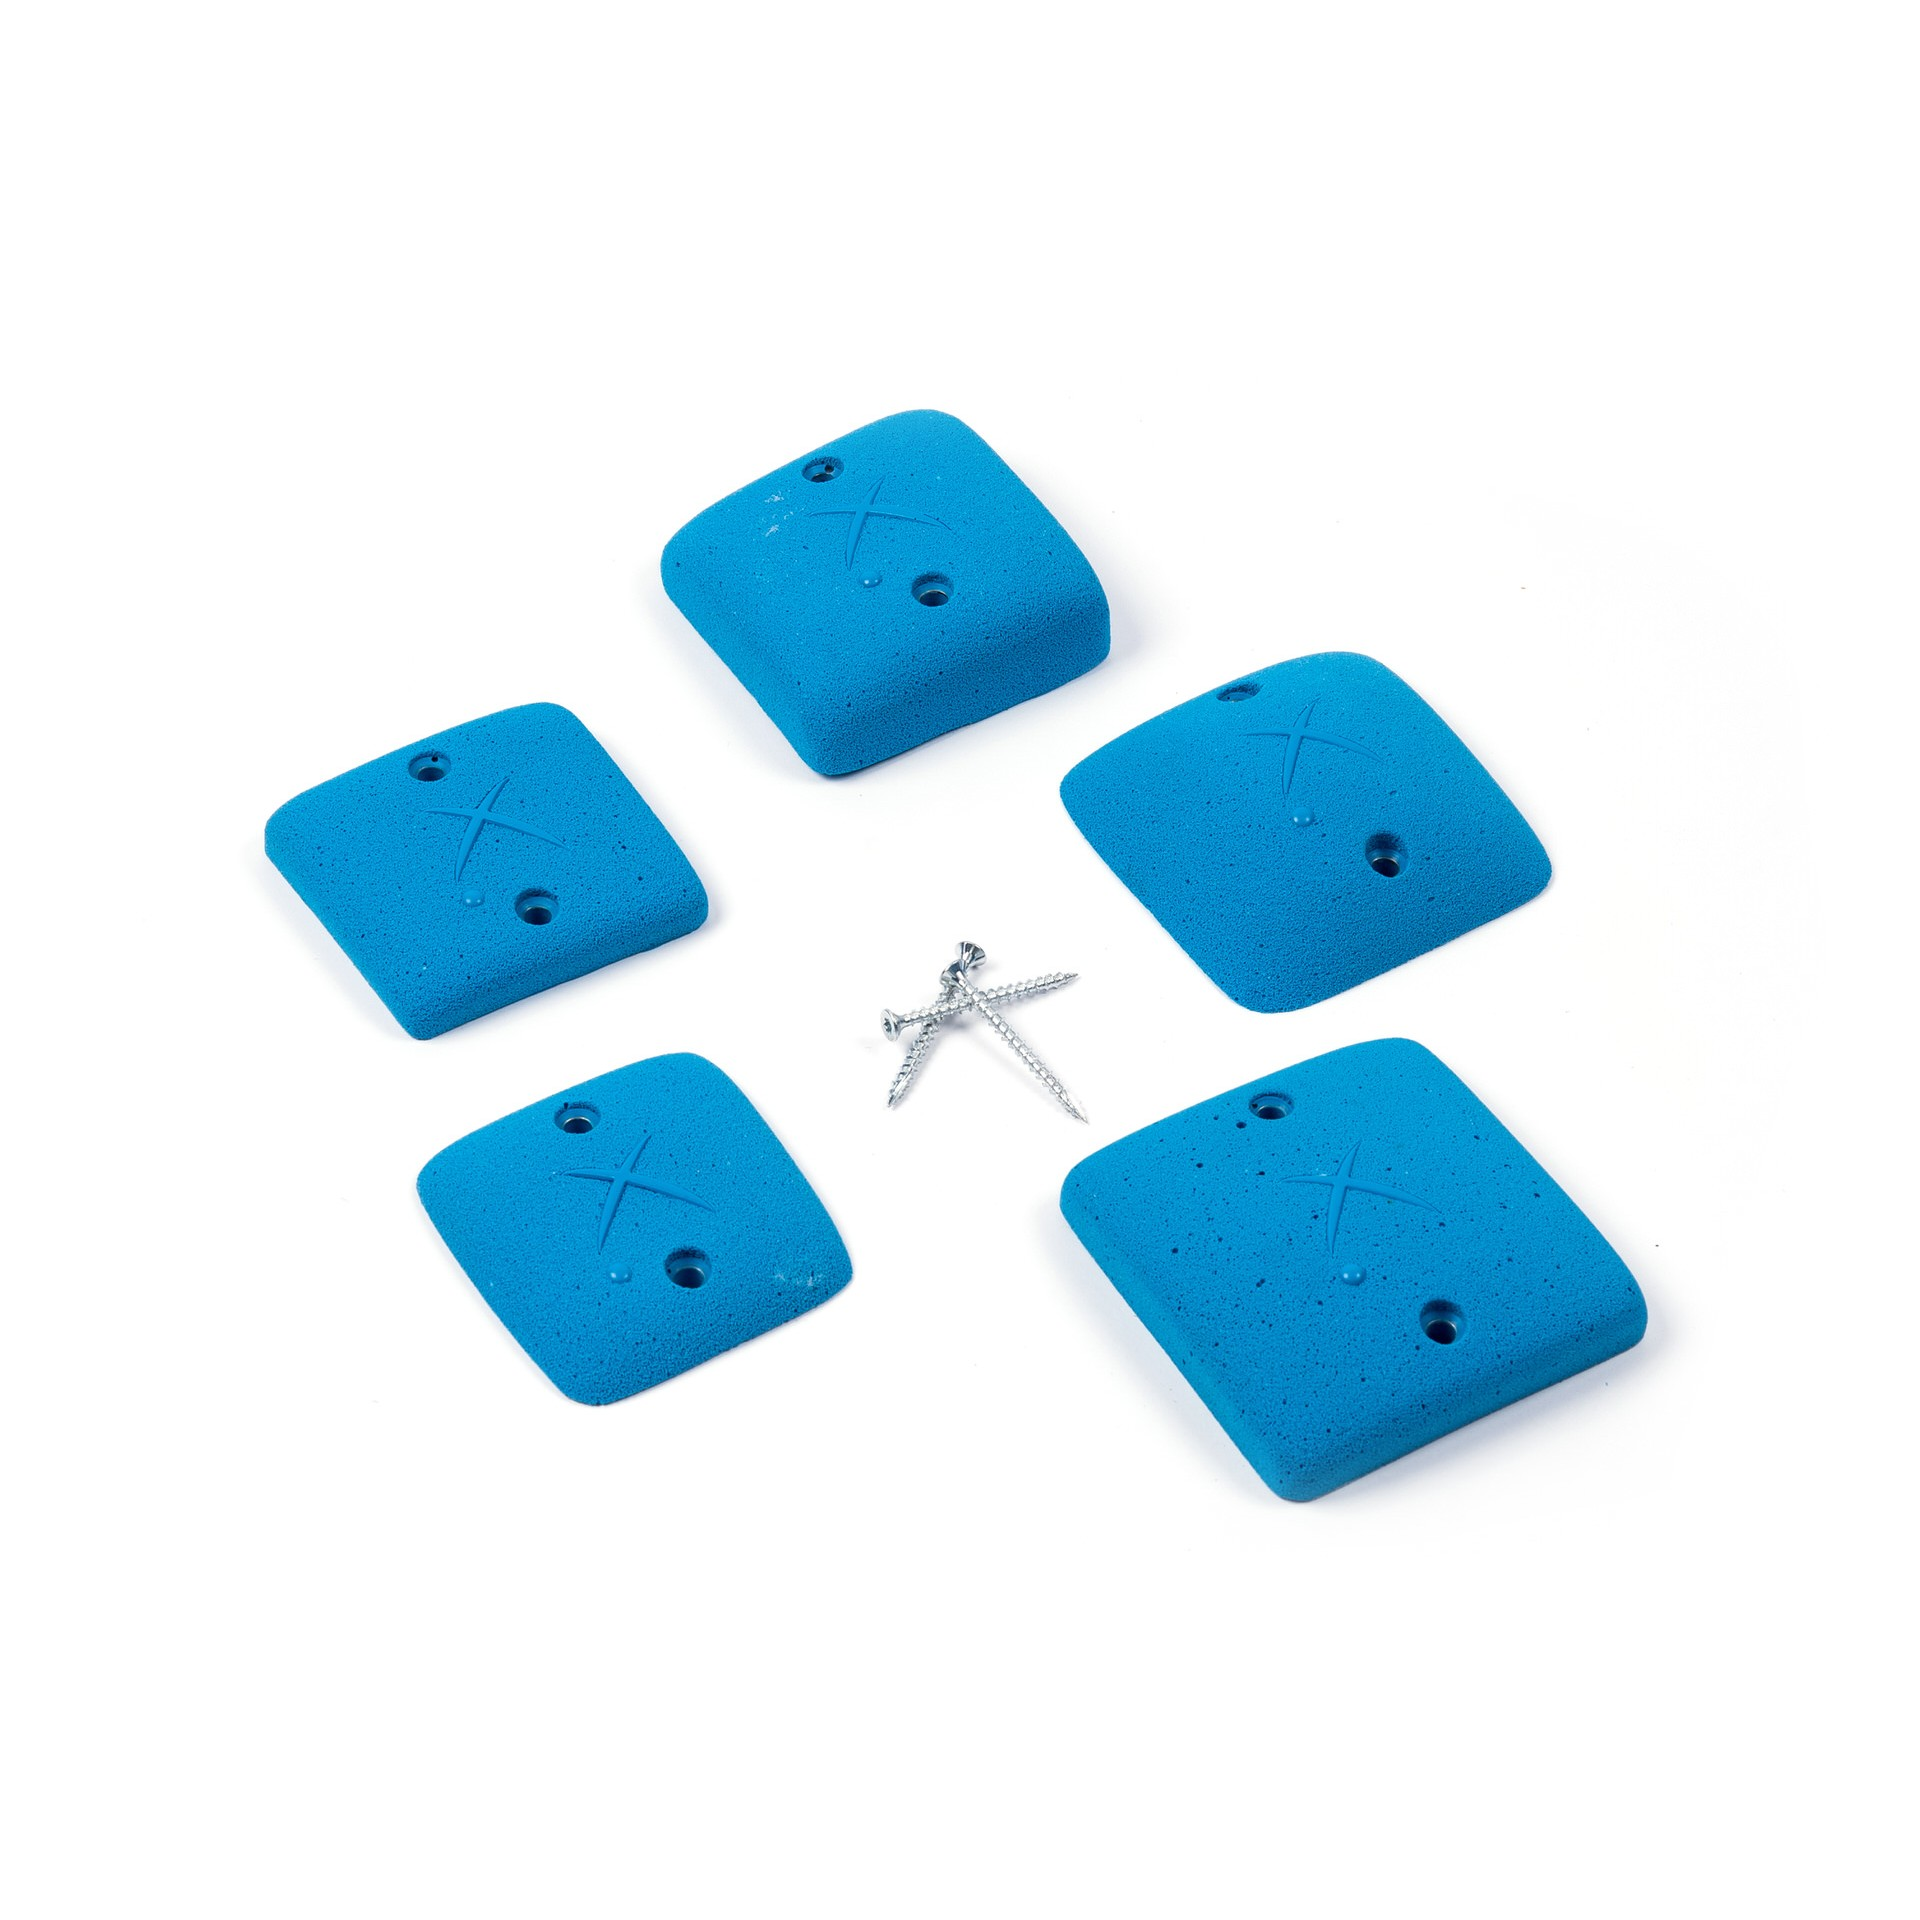 Little Boxes 1-5 Small (PU) - Holds.fr